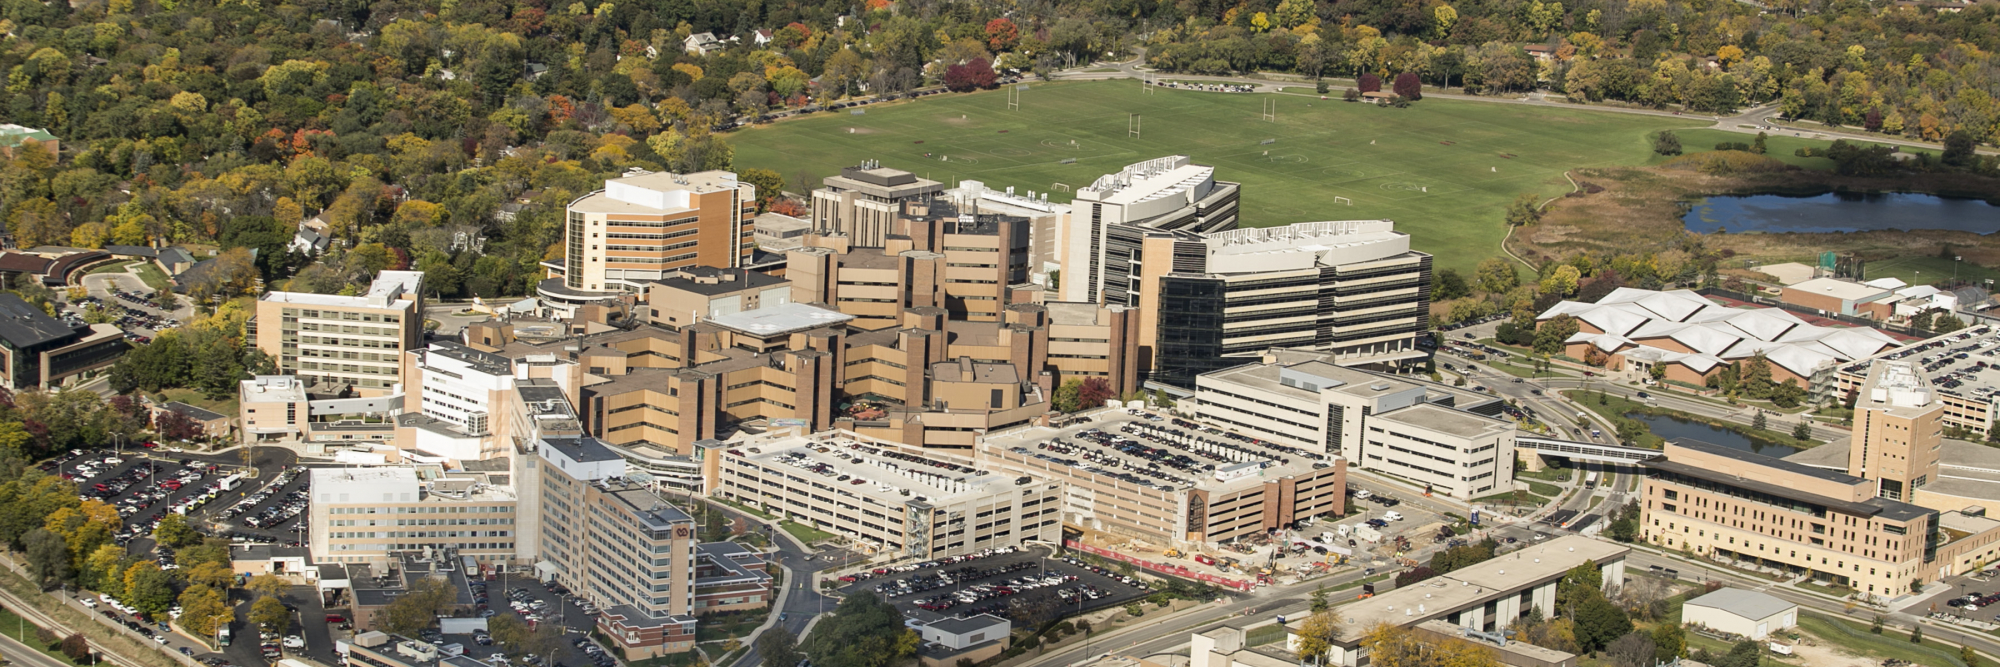 Aerial photo of UW-Madison west campus, including UW Hospitals and Clinics